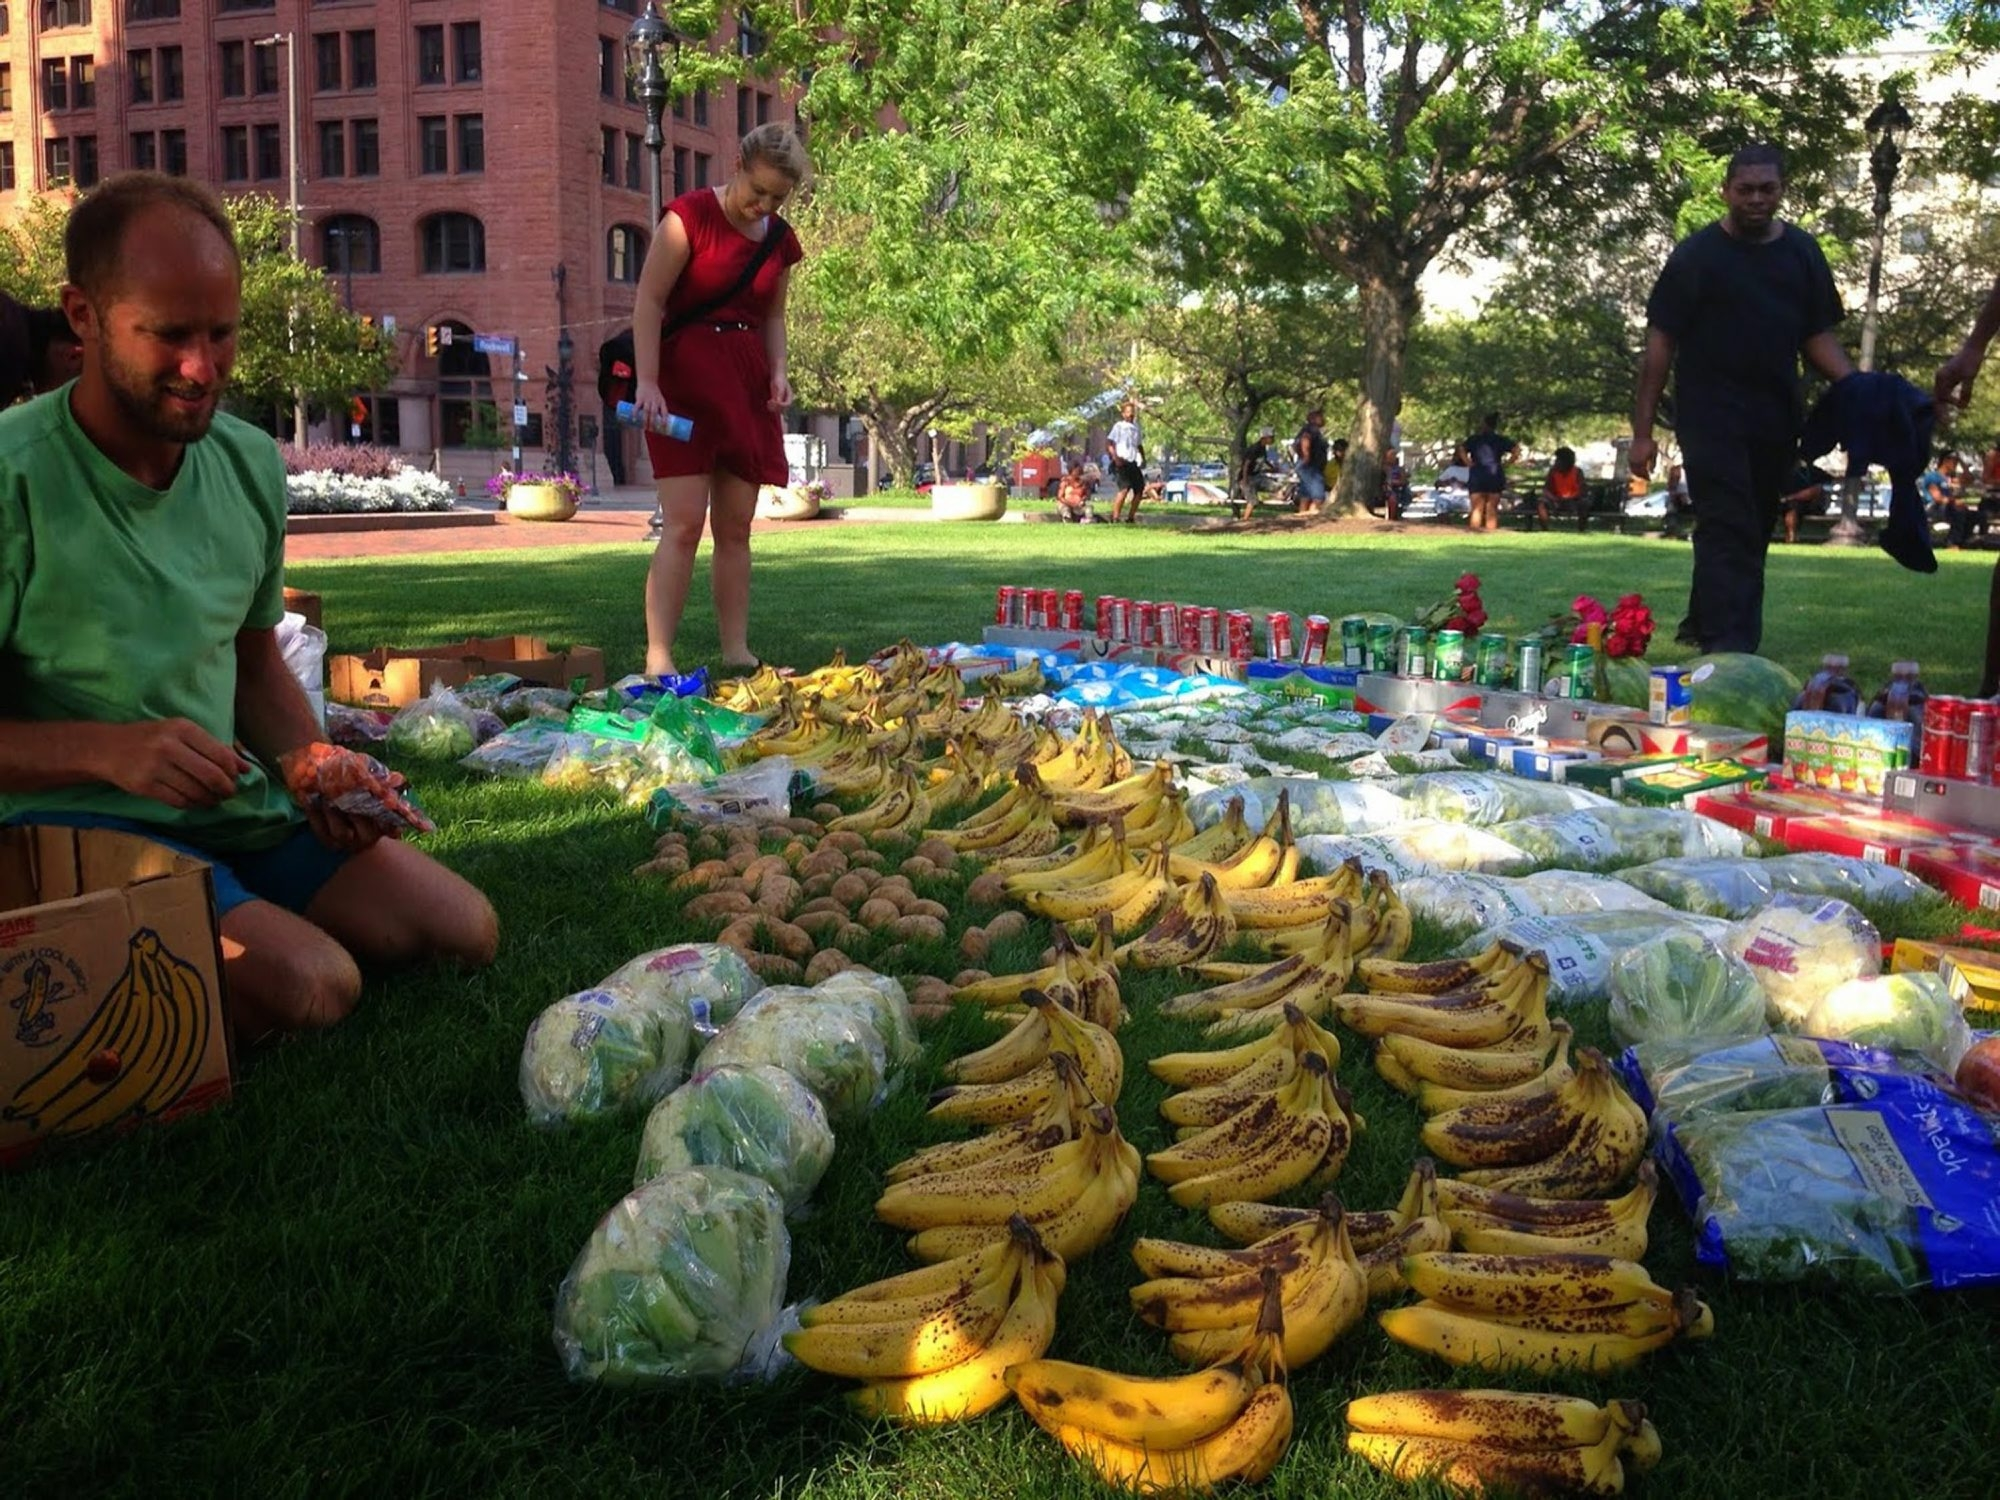 """All of the food laid out on the grass in Cleveland's Public Square was saved from dumpsters by Rob Greenfield, left, an environmental activist bicycling across the U.S., eating only food he finds in dumpsters. He creates """"food fiascoes"""" in many cities to showcase the food he's found."""